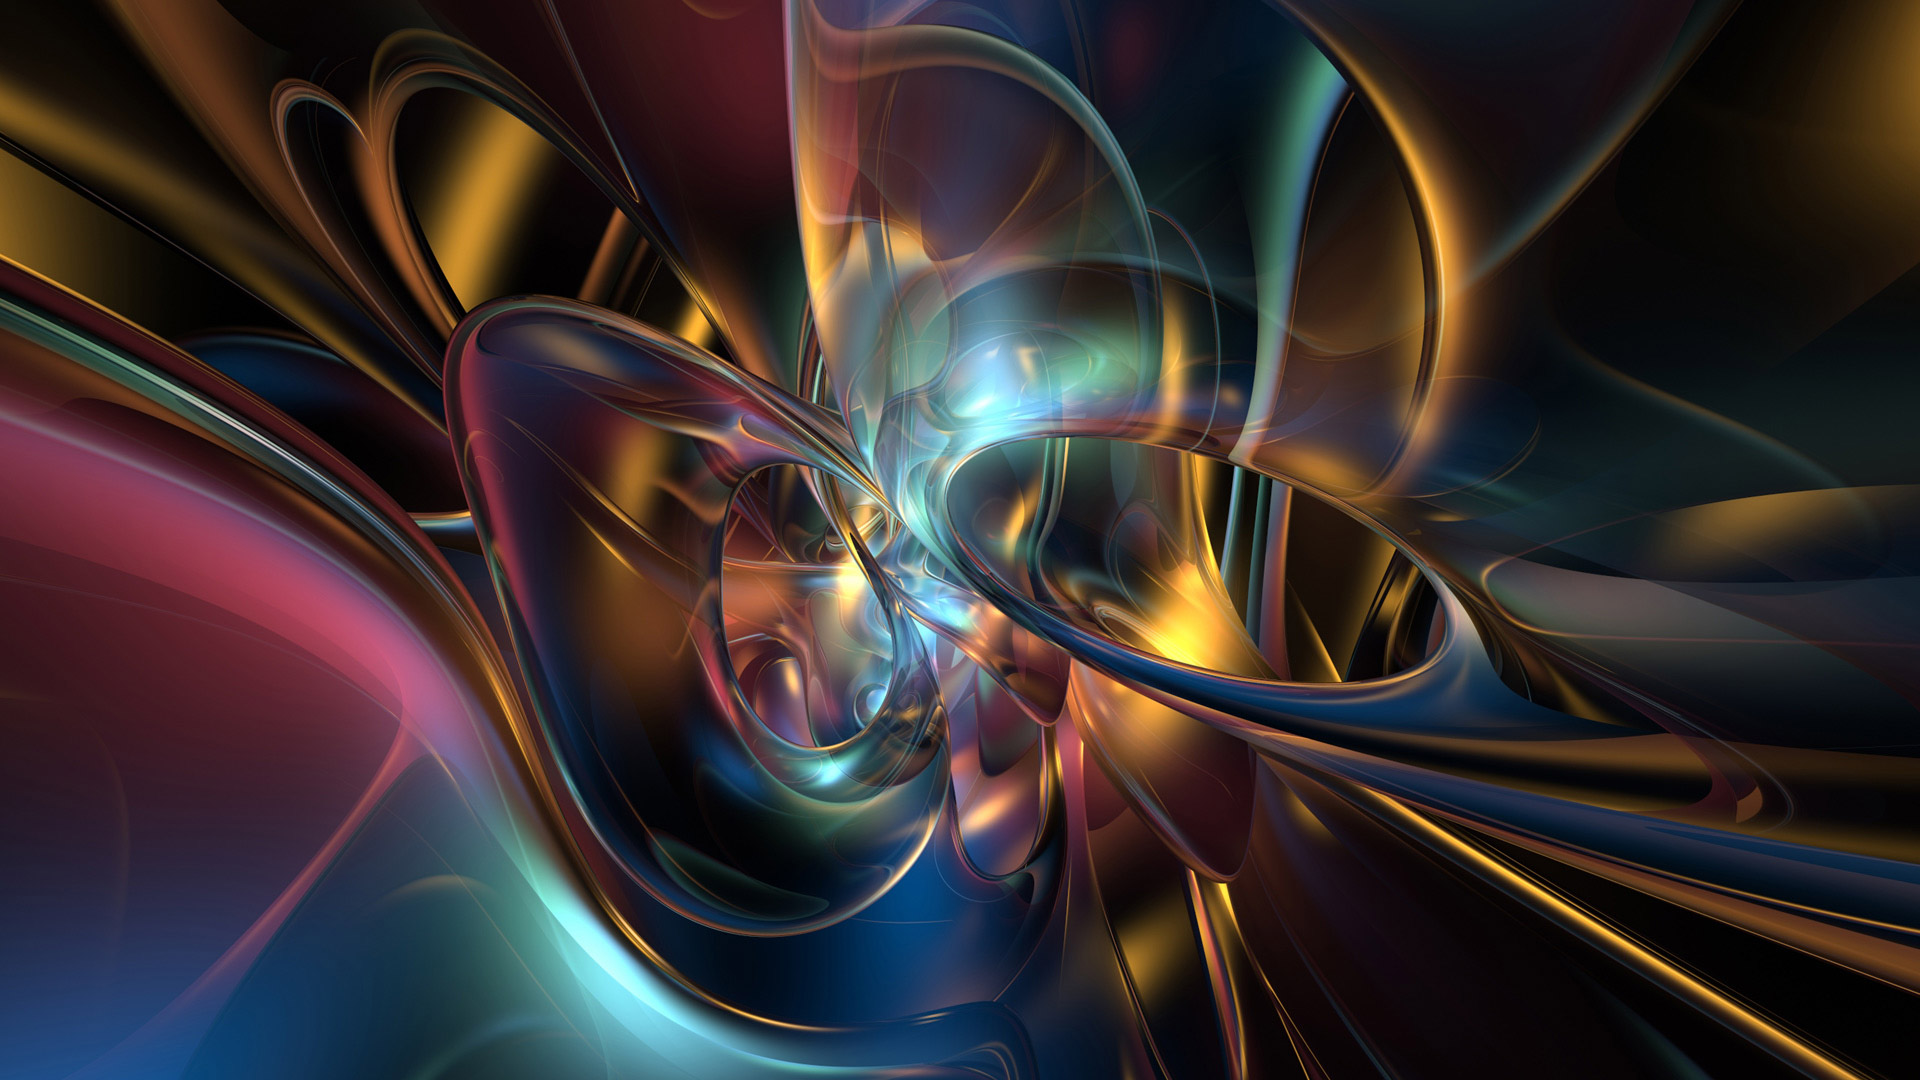 3D Abstract Art Desktop Wallpaper 1080P